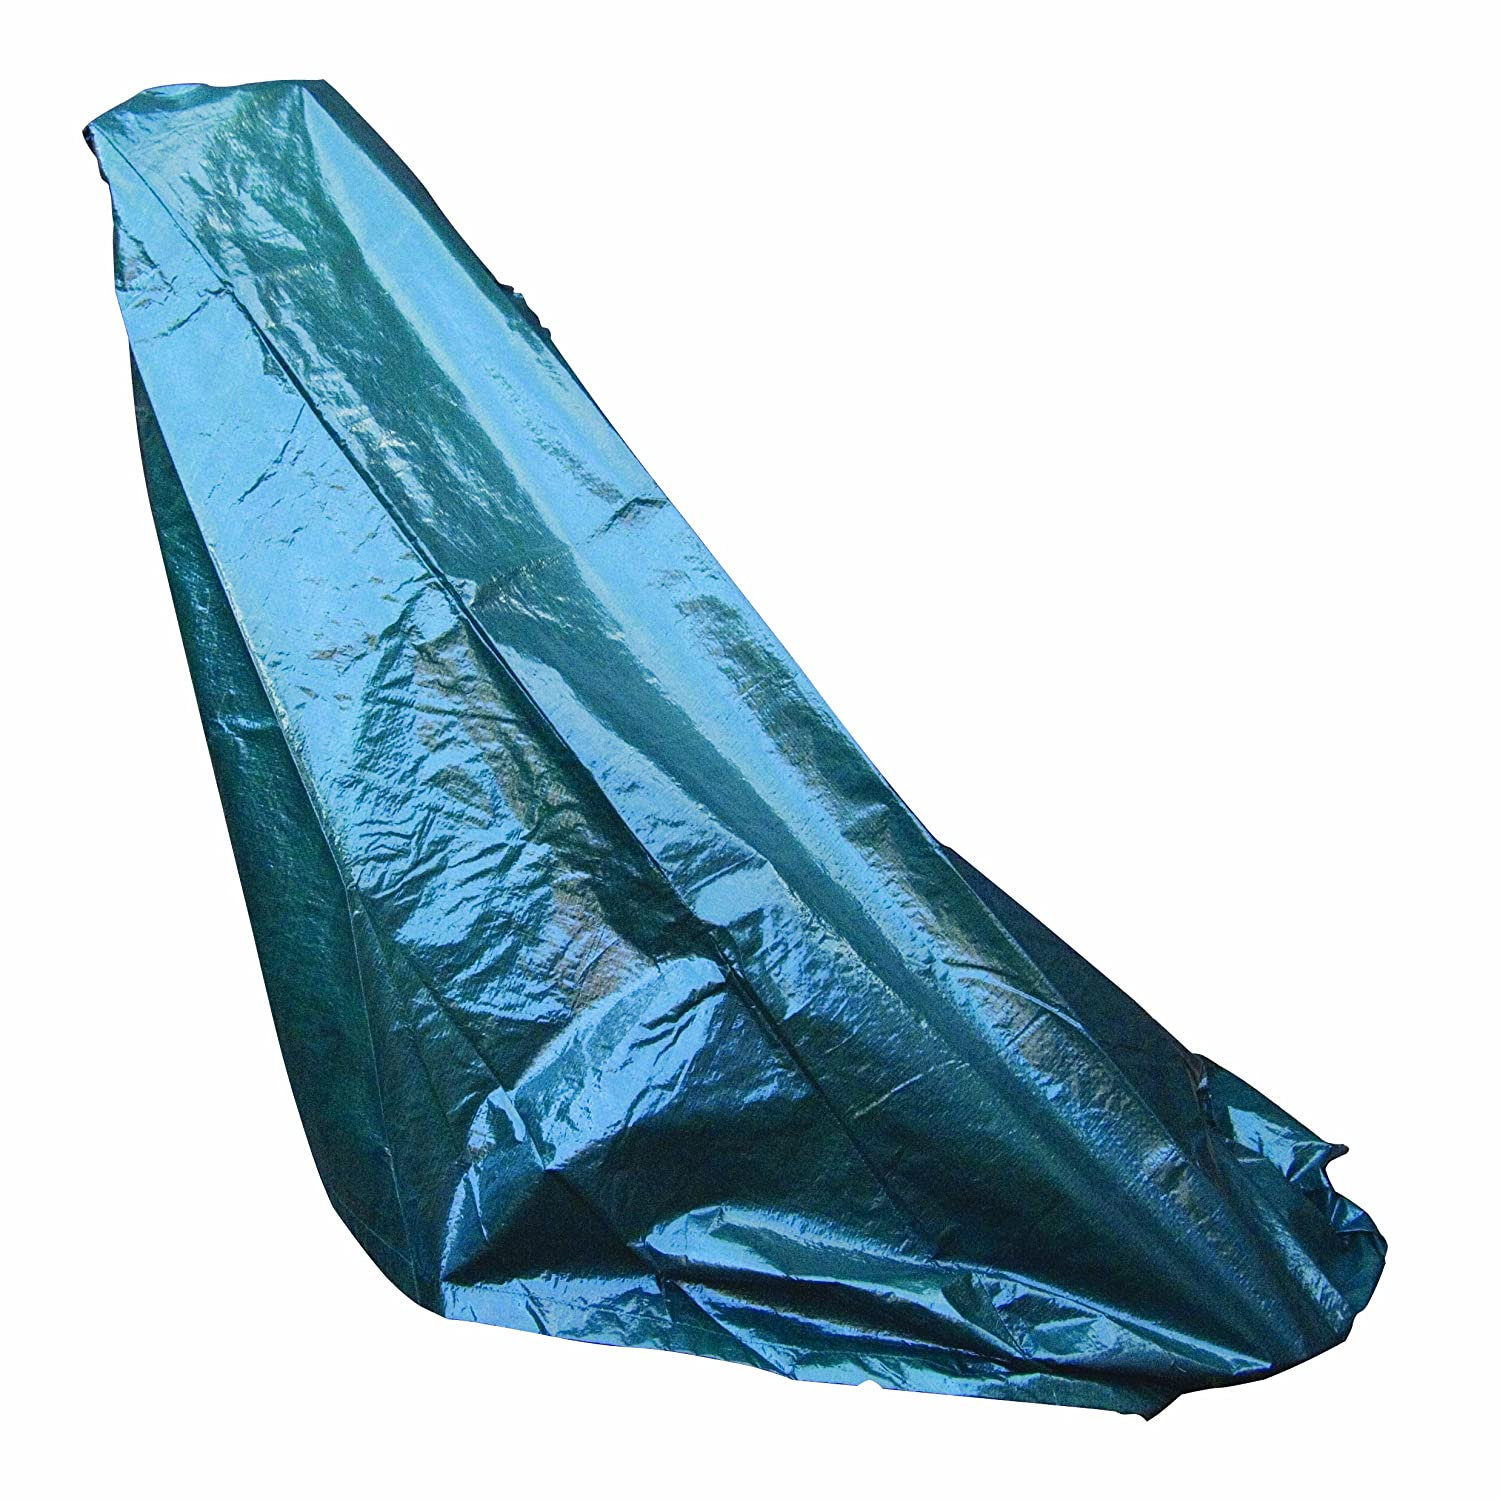 Silverline 410810 Lawn Mower Cover, 1000 x 970 x 500 mm